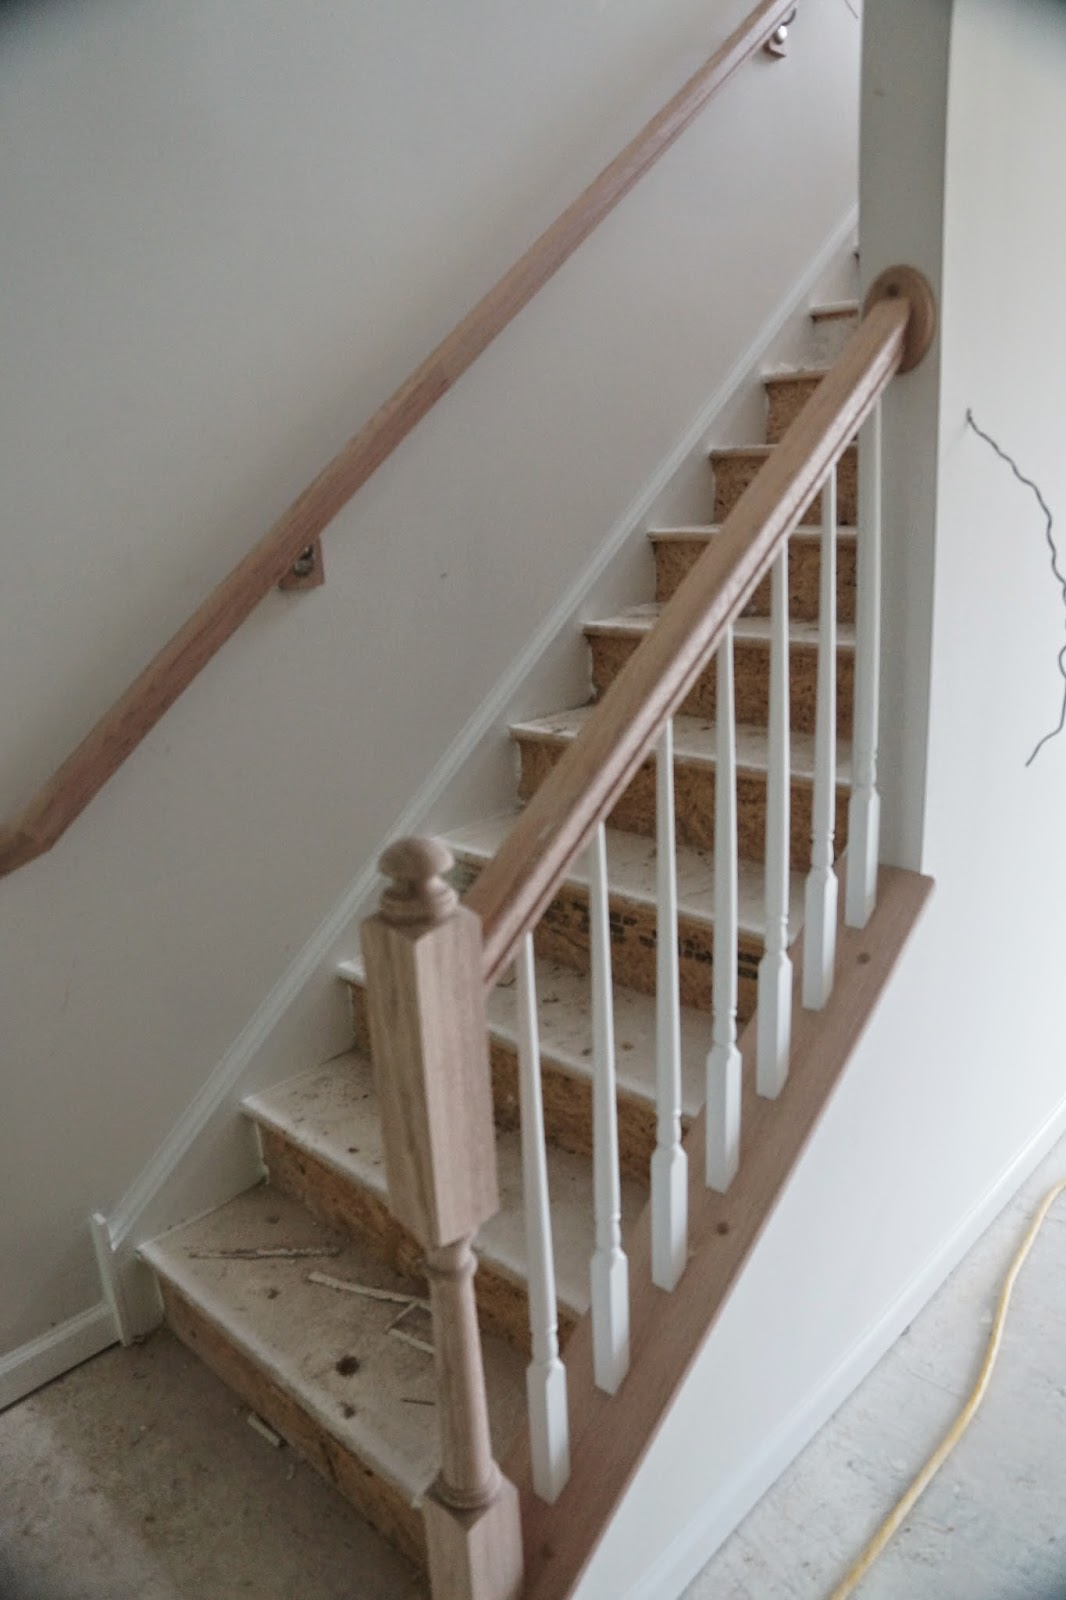 Picture of the unfinished banister on the bottom of the stairs as viewed from family room